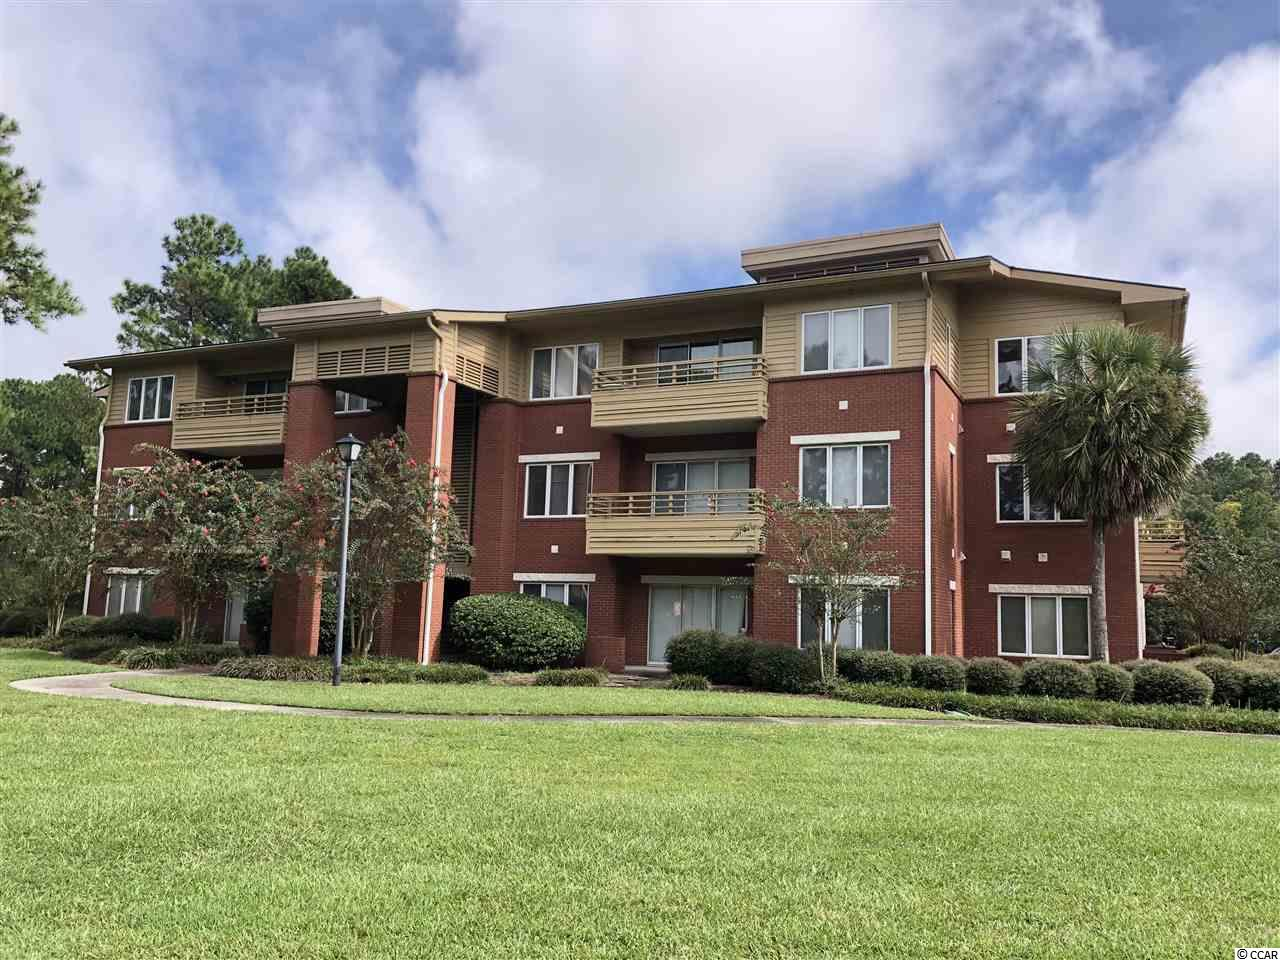 1st Floor 2 BD 2 BA unit located in Aviary Village, Unit has new carpet and paint.  Community amenities include a clubhouse with a fitness room, outdoor pool, BBQ area with picnic tables, and playground.  This property is only minutes to Coastal Carolina & Horry Tech colleges.